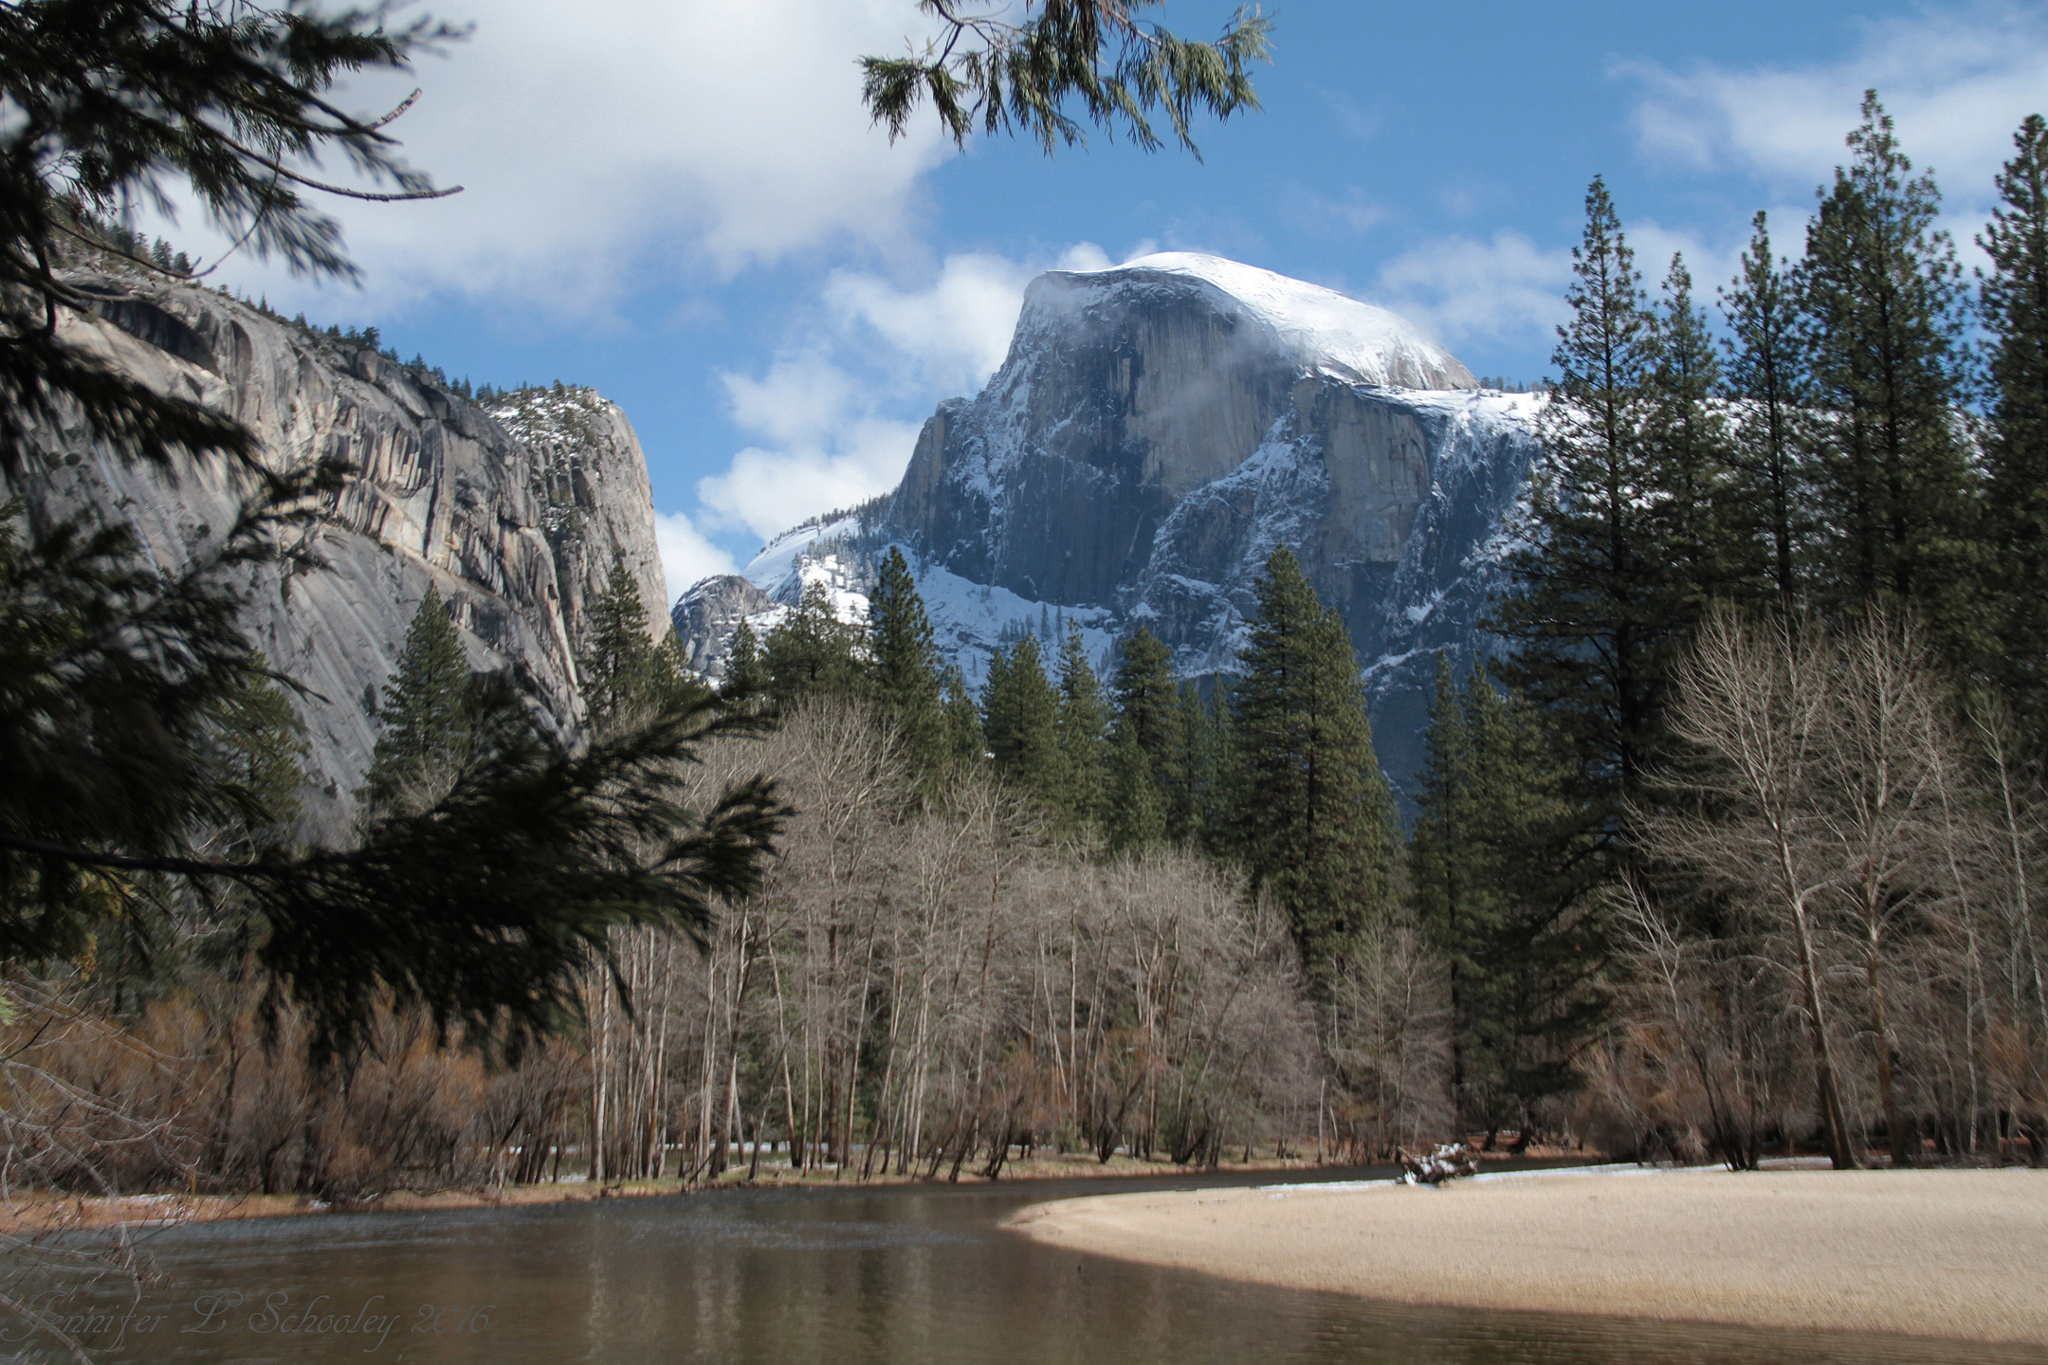 Snowy Half Dome Between Storms - March 2015 by Jennifer Schooley